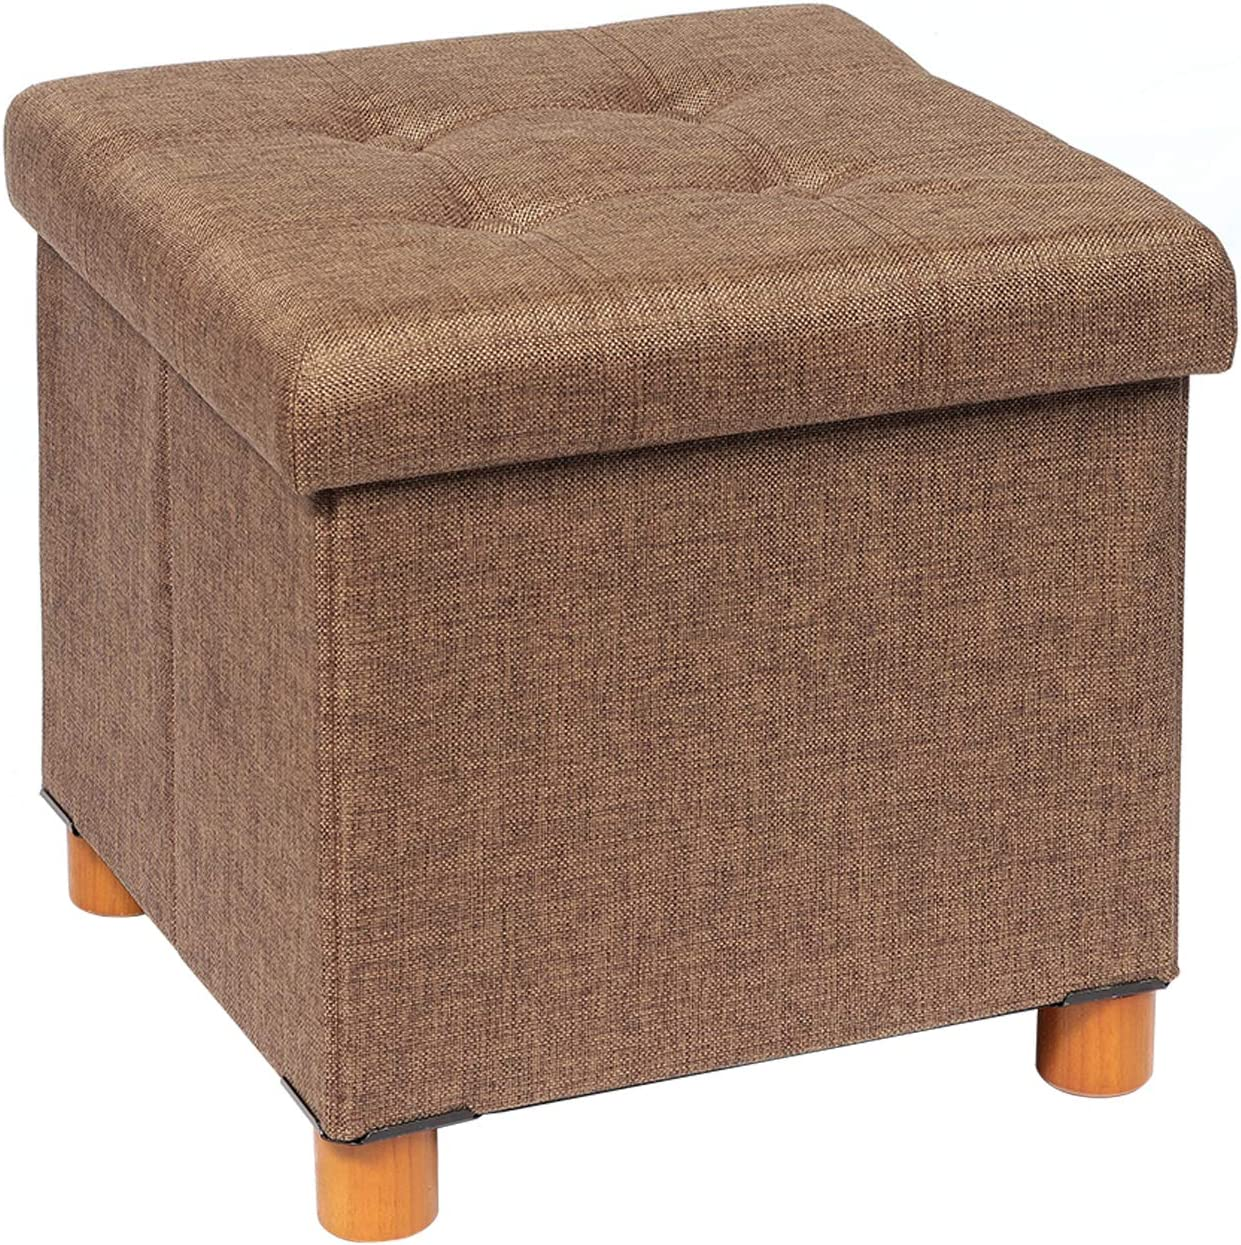 B FSOBEIIALEO Storage Ottoman with Tray, Foot Stools and Ottomans with Wooden Feet, Storage Cube Seat Linen Brown 15""